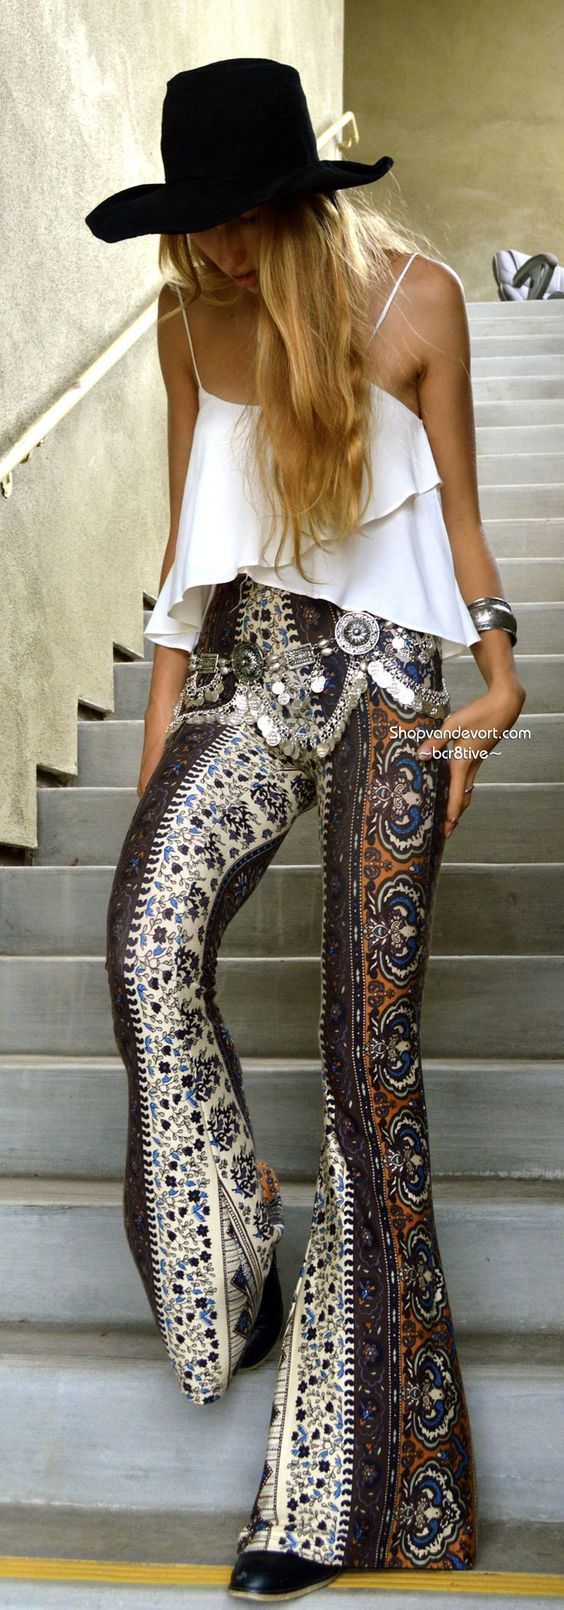 ☮ American Hippie Bohemian Style ~ Boho Palazzo Pants and Hat!